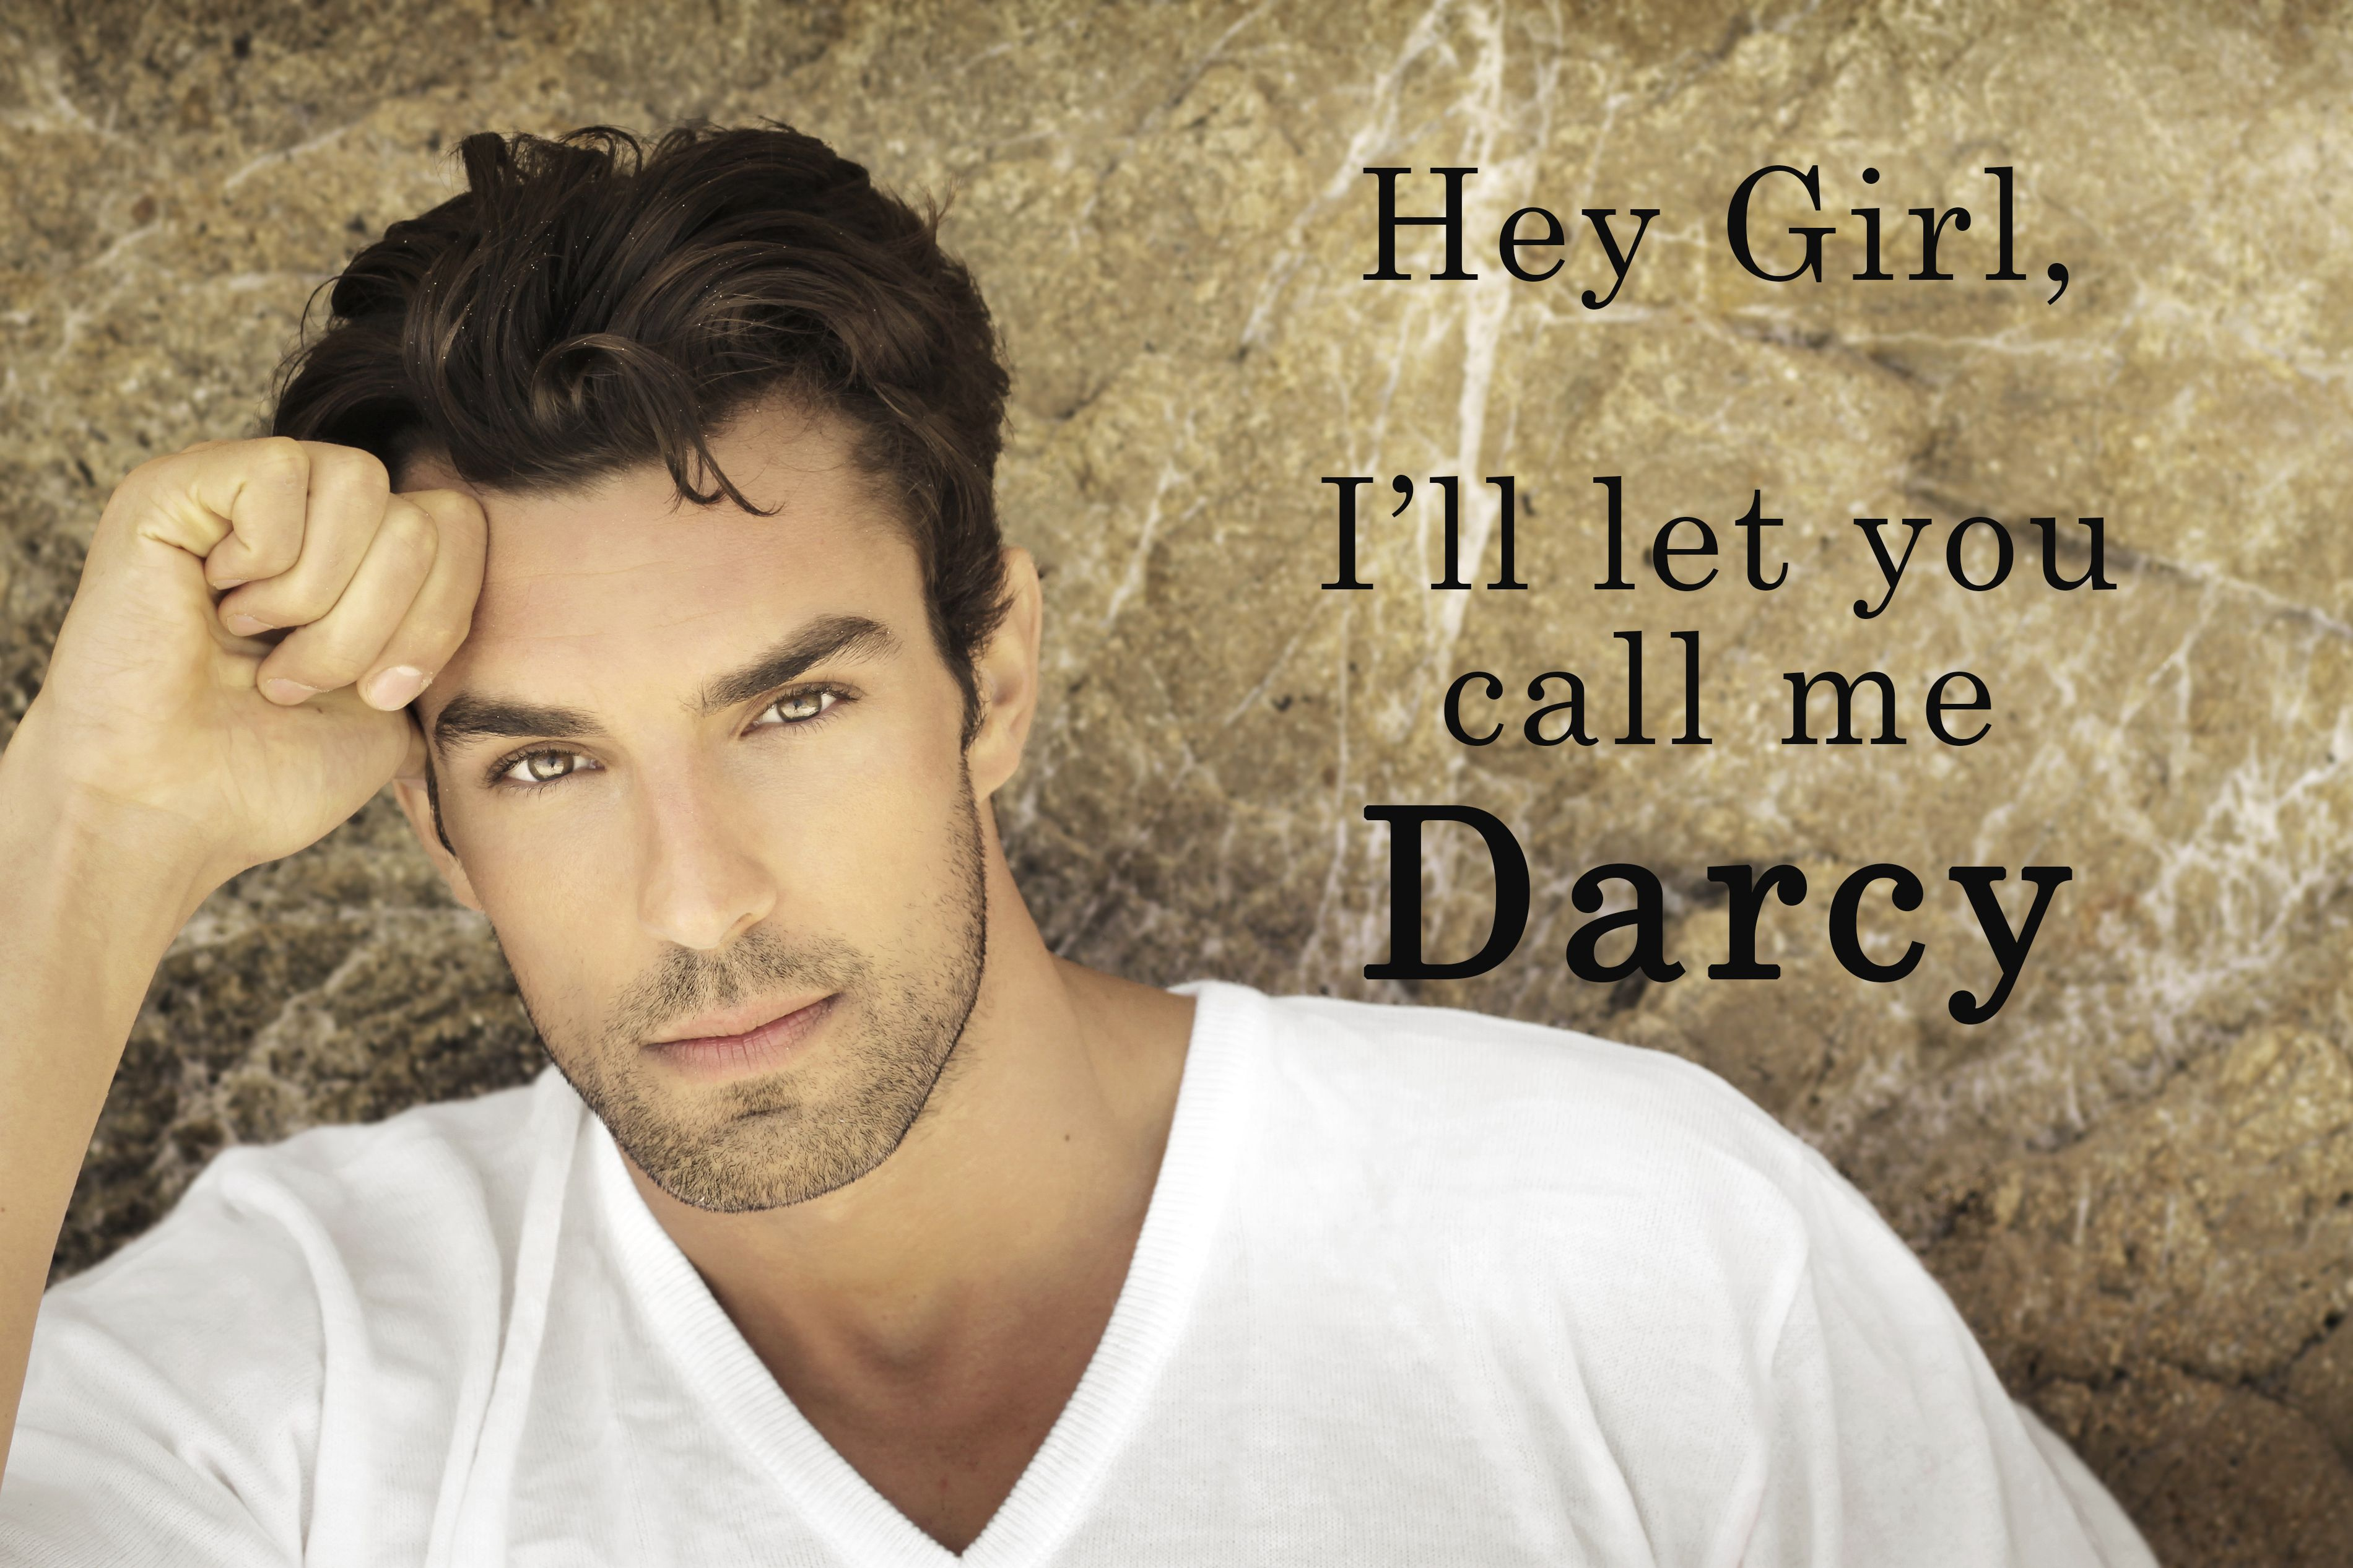 Bad mens haircuts whatus in a name  just because  pinterest  mr darcy hey girl